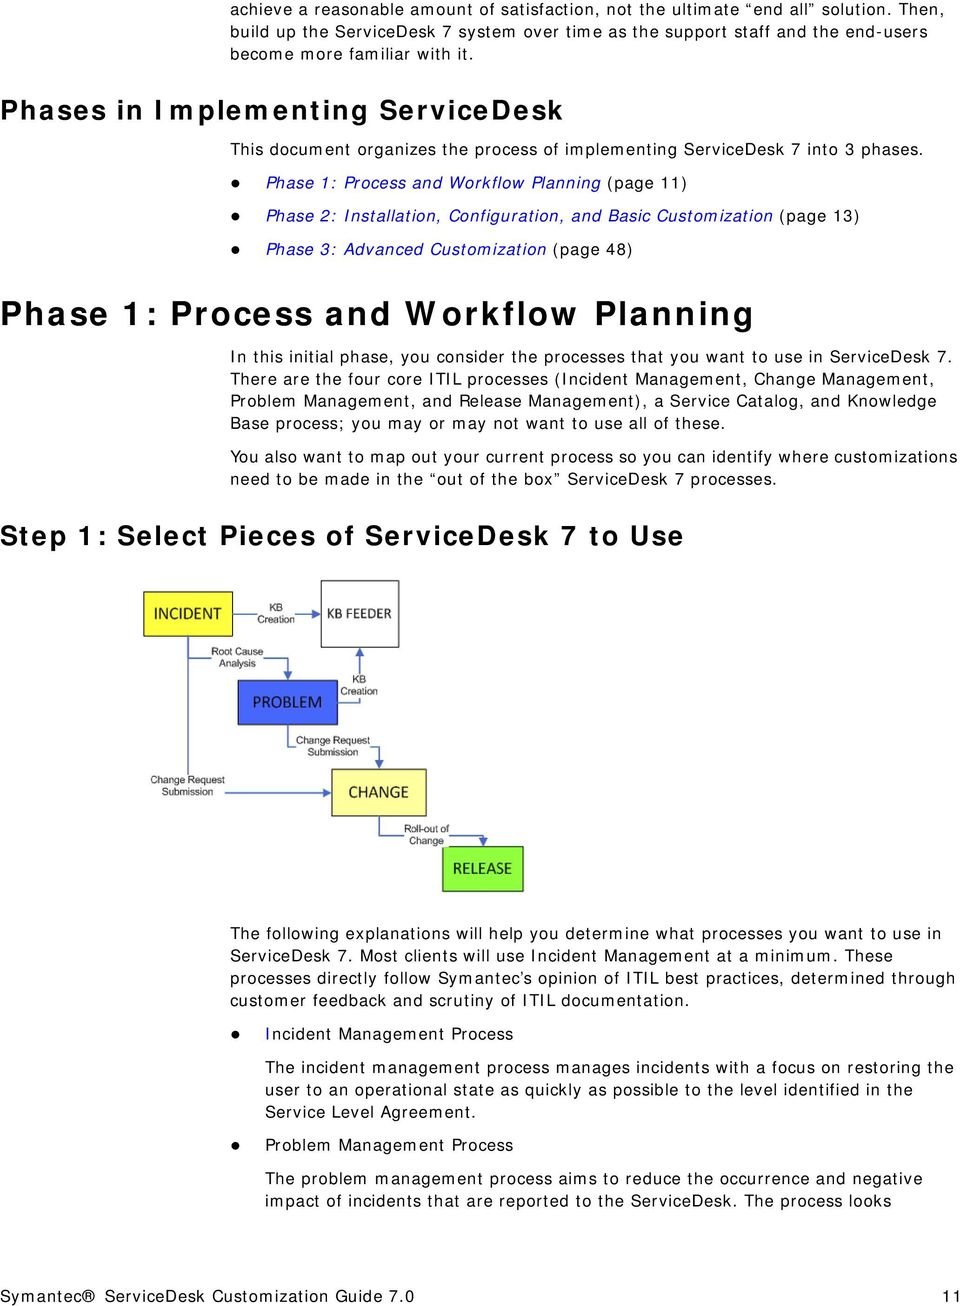 Phase 1: Process and Workflow Planning (page 11) Phase 2: Installation, Configuration, and Basic Customization (page 13) Phase 3: Advanced Customization (page 48) Phase 1: Process and Workflow